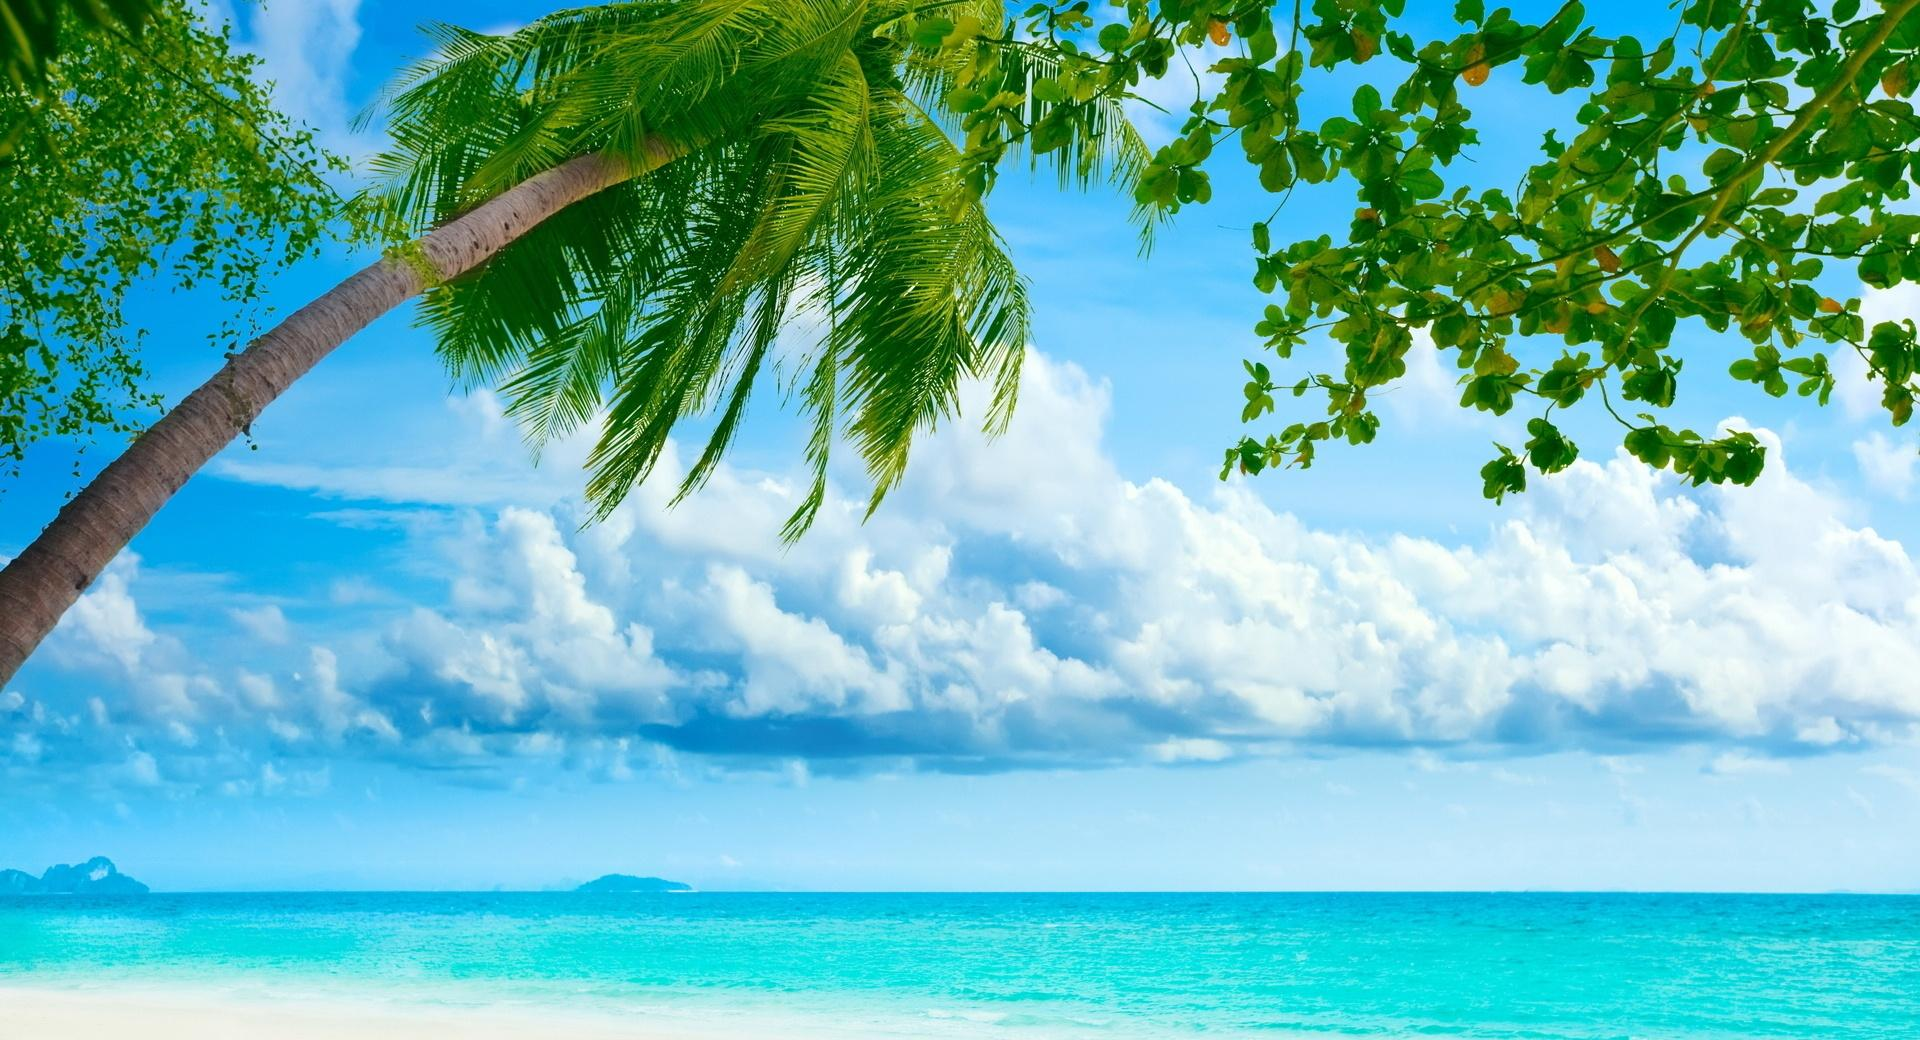 Tropical Beach Resorts wallpapers HD quality